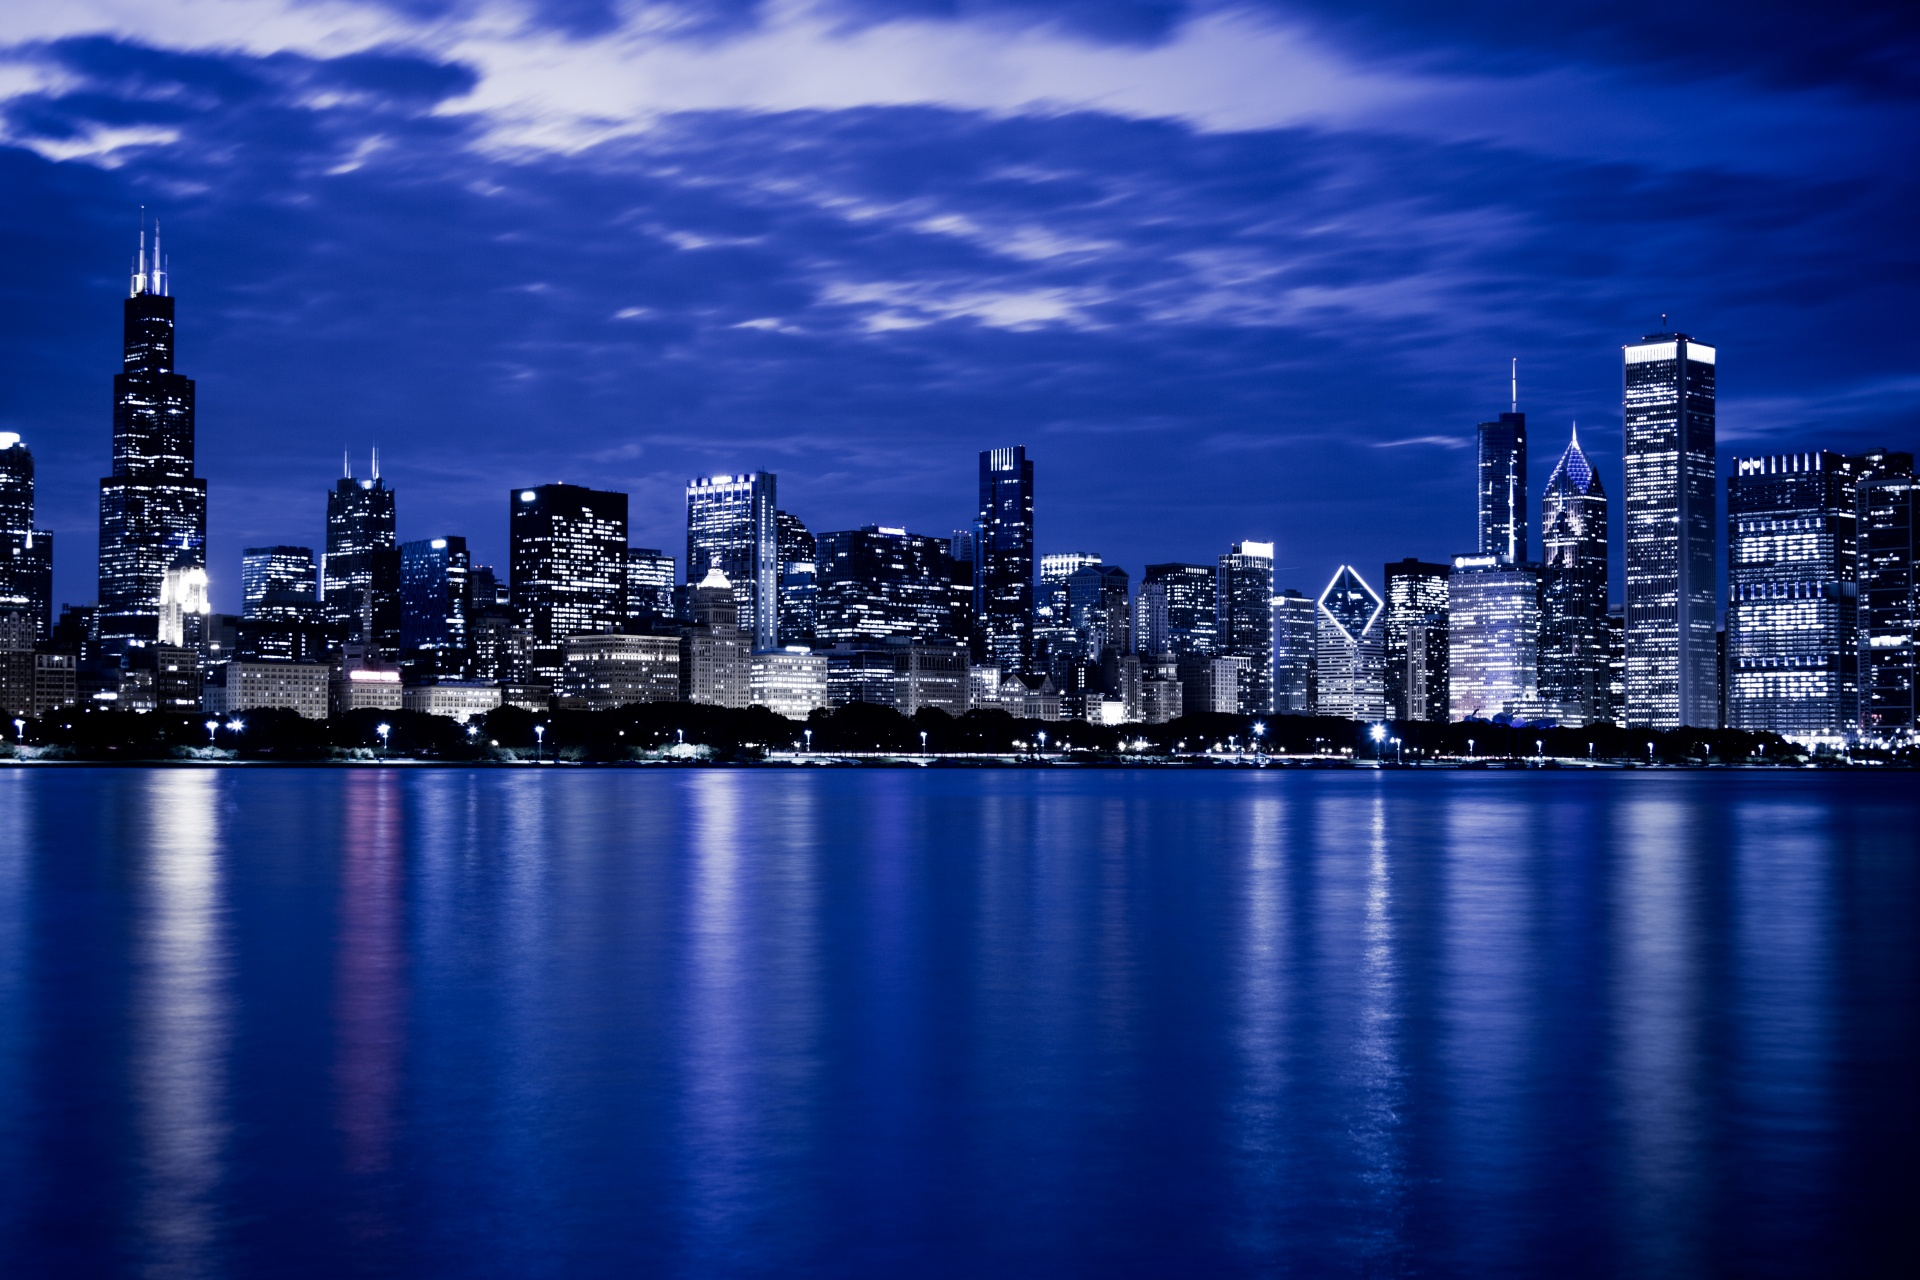 Fall Computer Screen Wallpaper Chicago Skyline At Night Free Stock Photo Public Domain